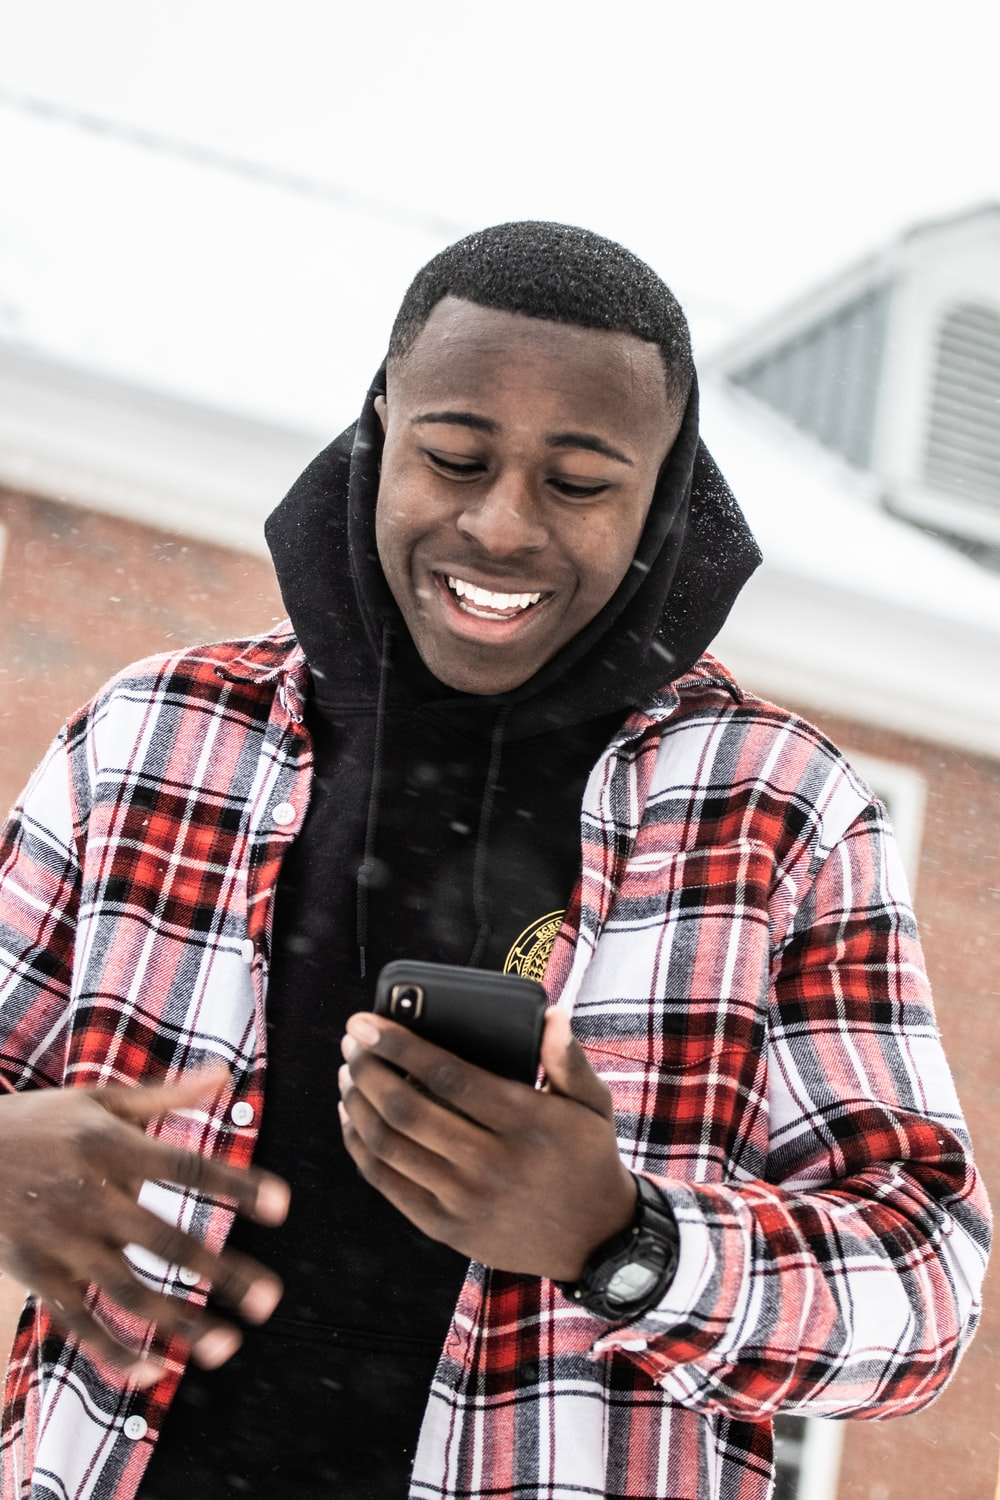 smiling man standing while using phone